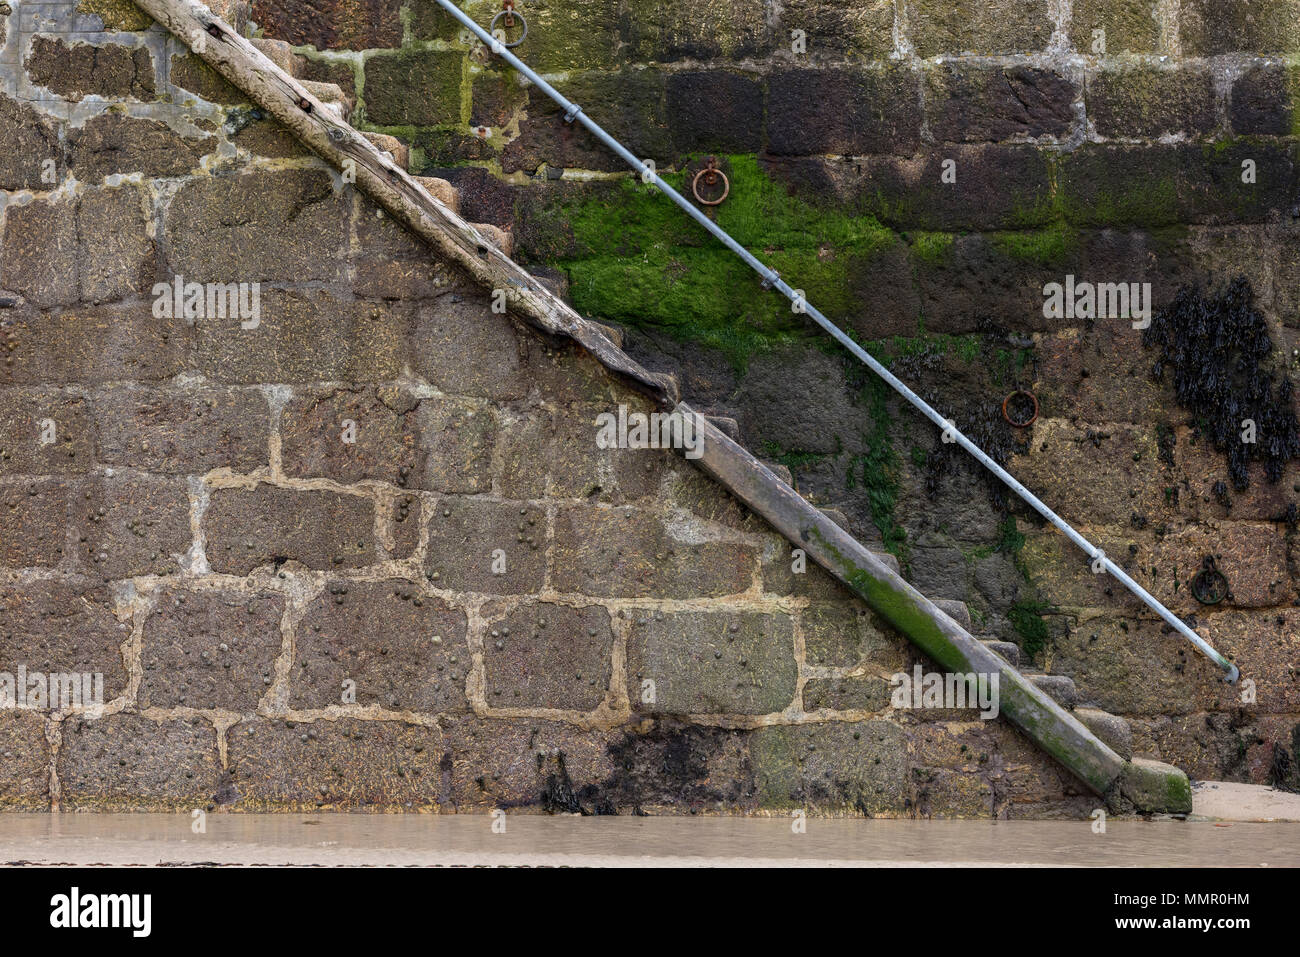 a set of steps or stairs on the harbour wall at st ives in cornwall. seaweed covered slippery steps. - Stock Image